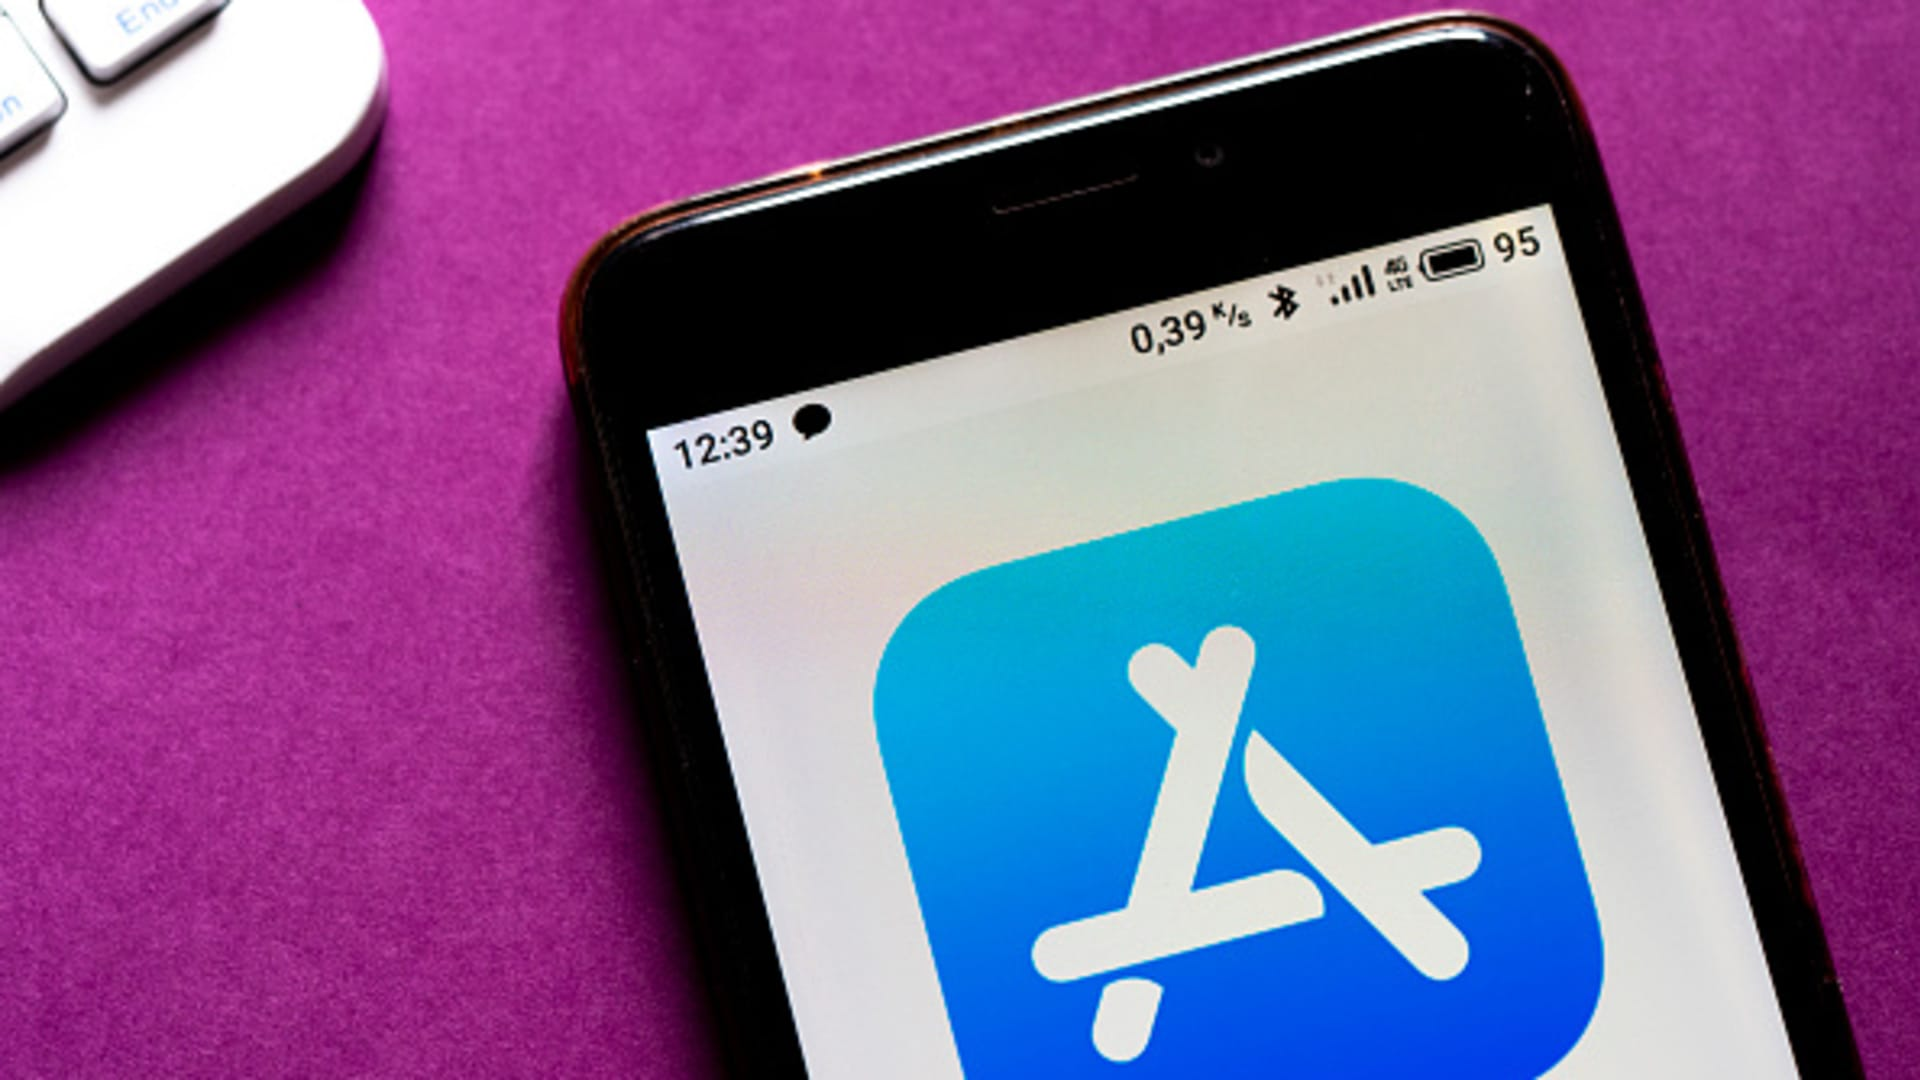 The App Store logo displayed on a smartphone.